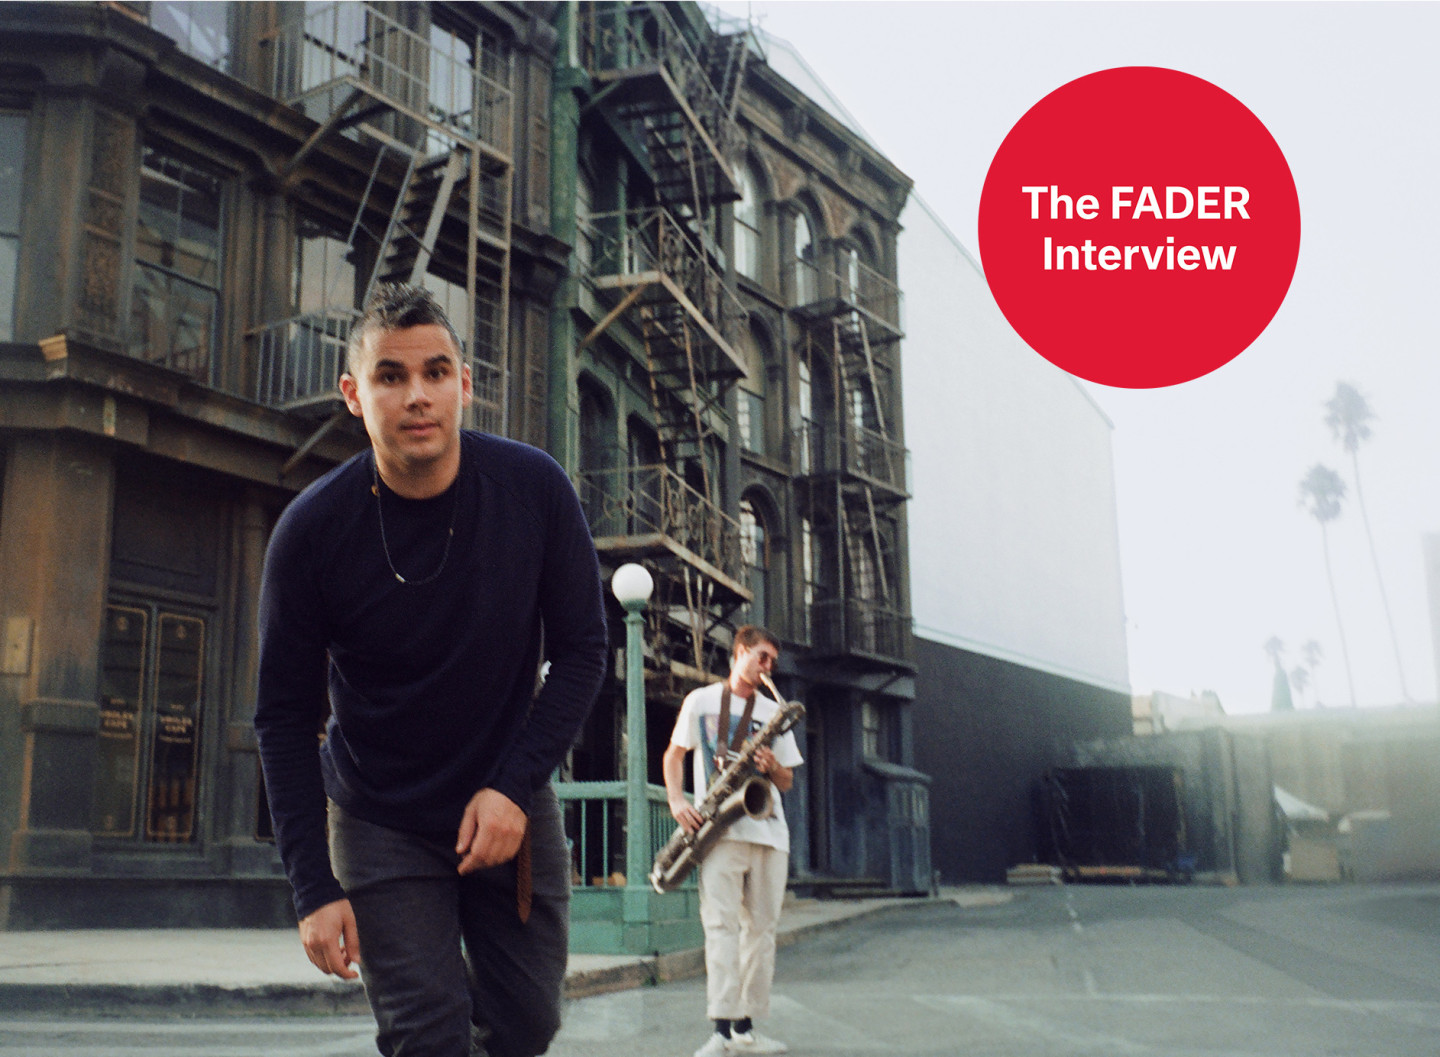 Rostam on sax solos, going with change, and his new summer album